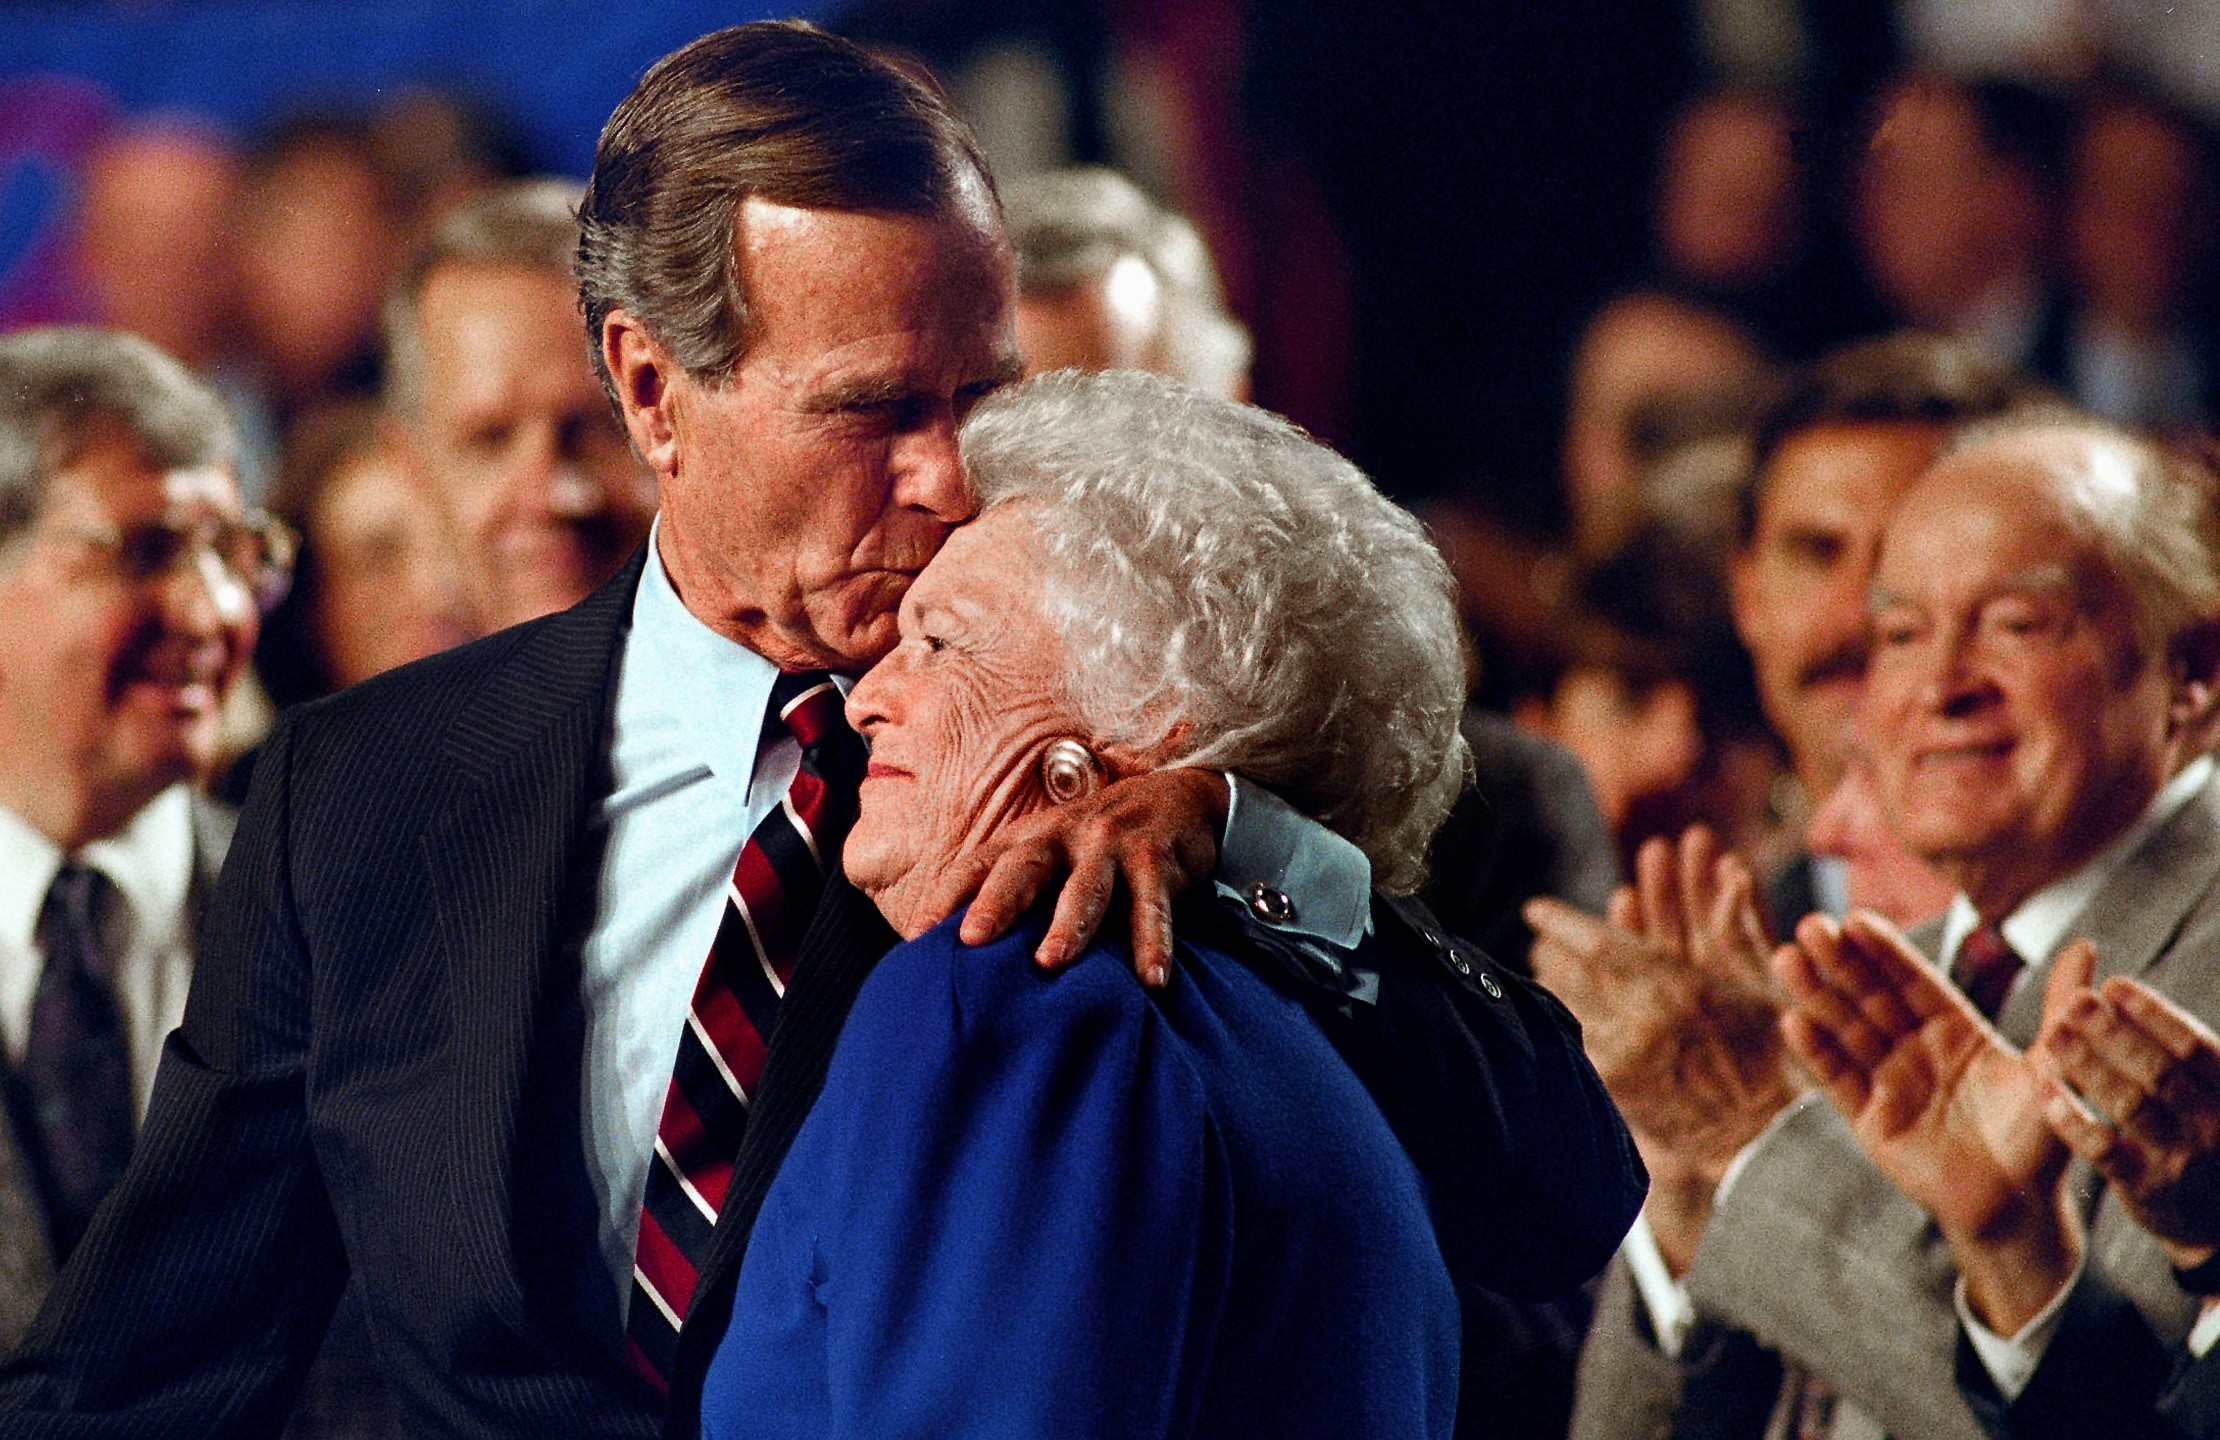 Barbara_Bush_Marriage_32370-159532.jpg40070674